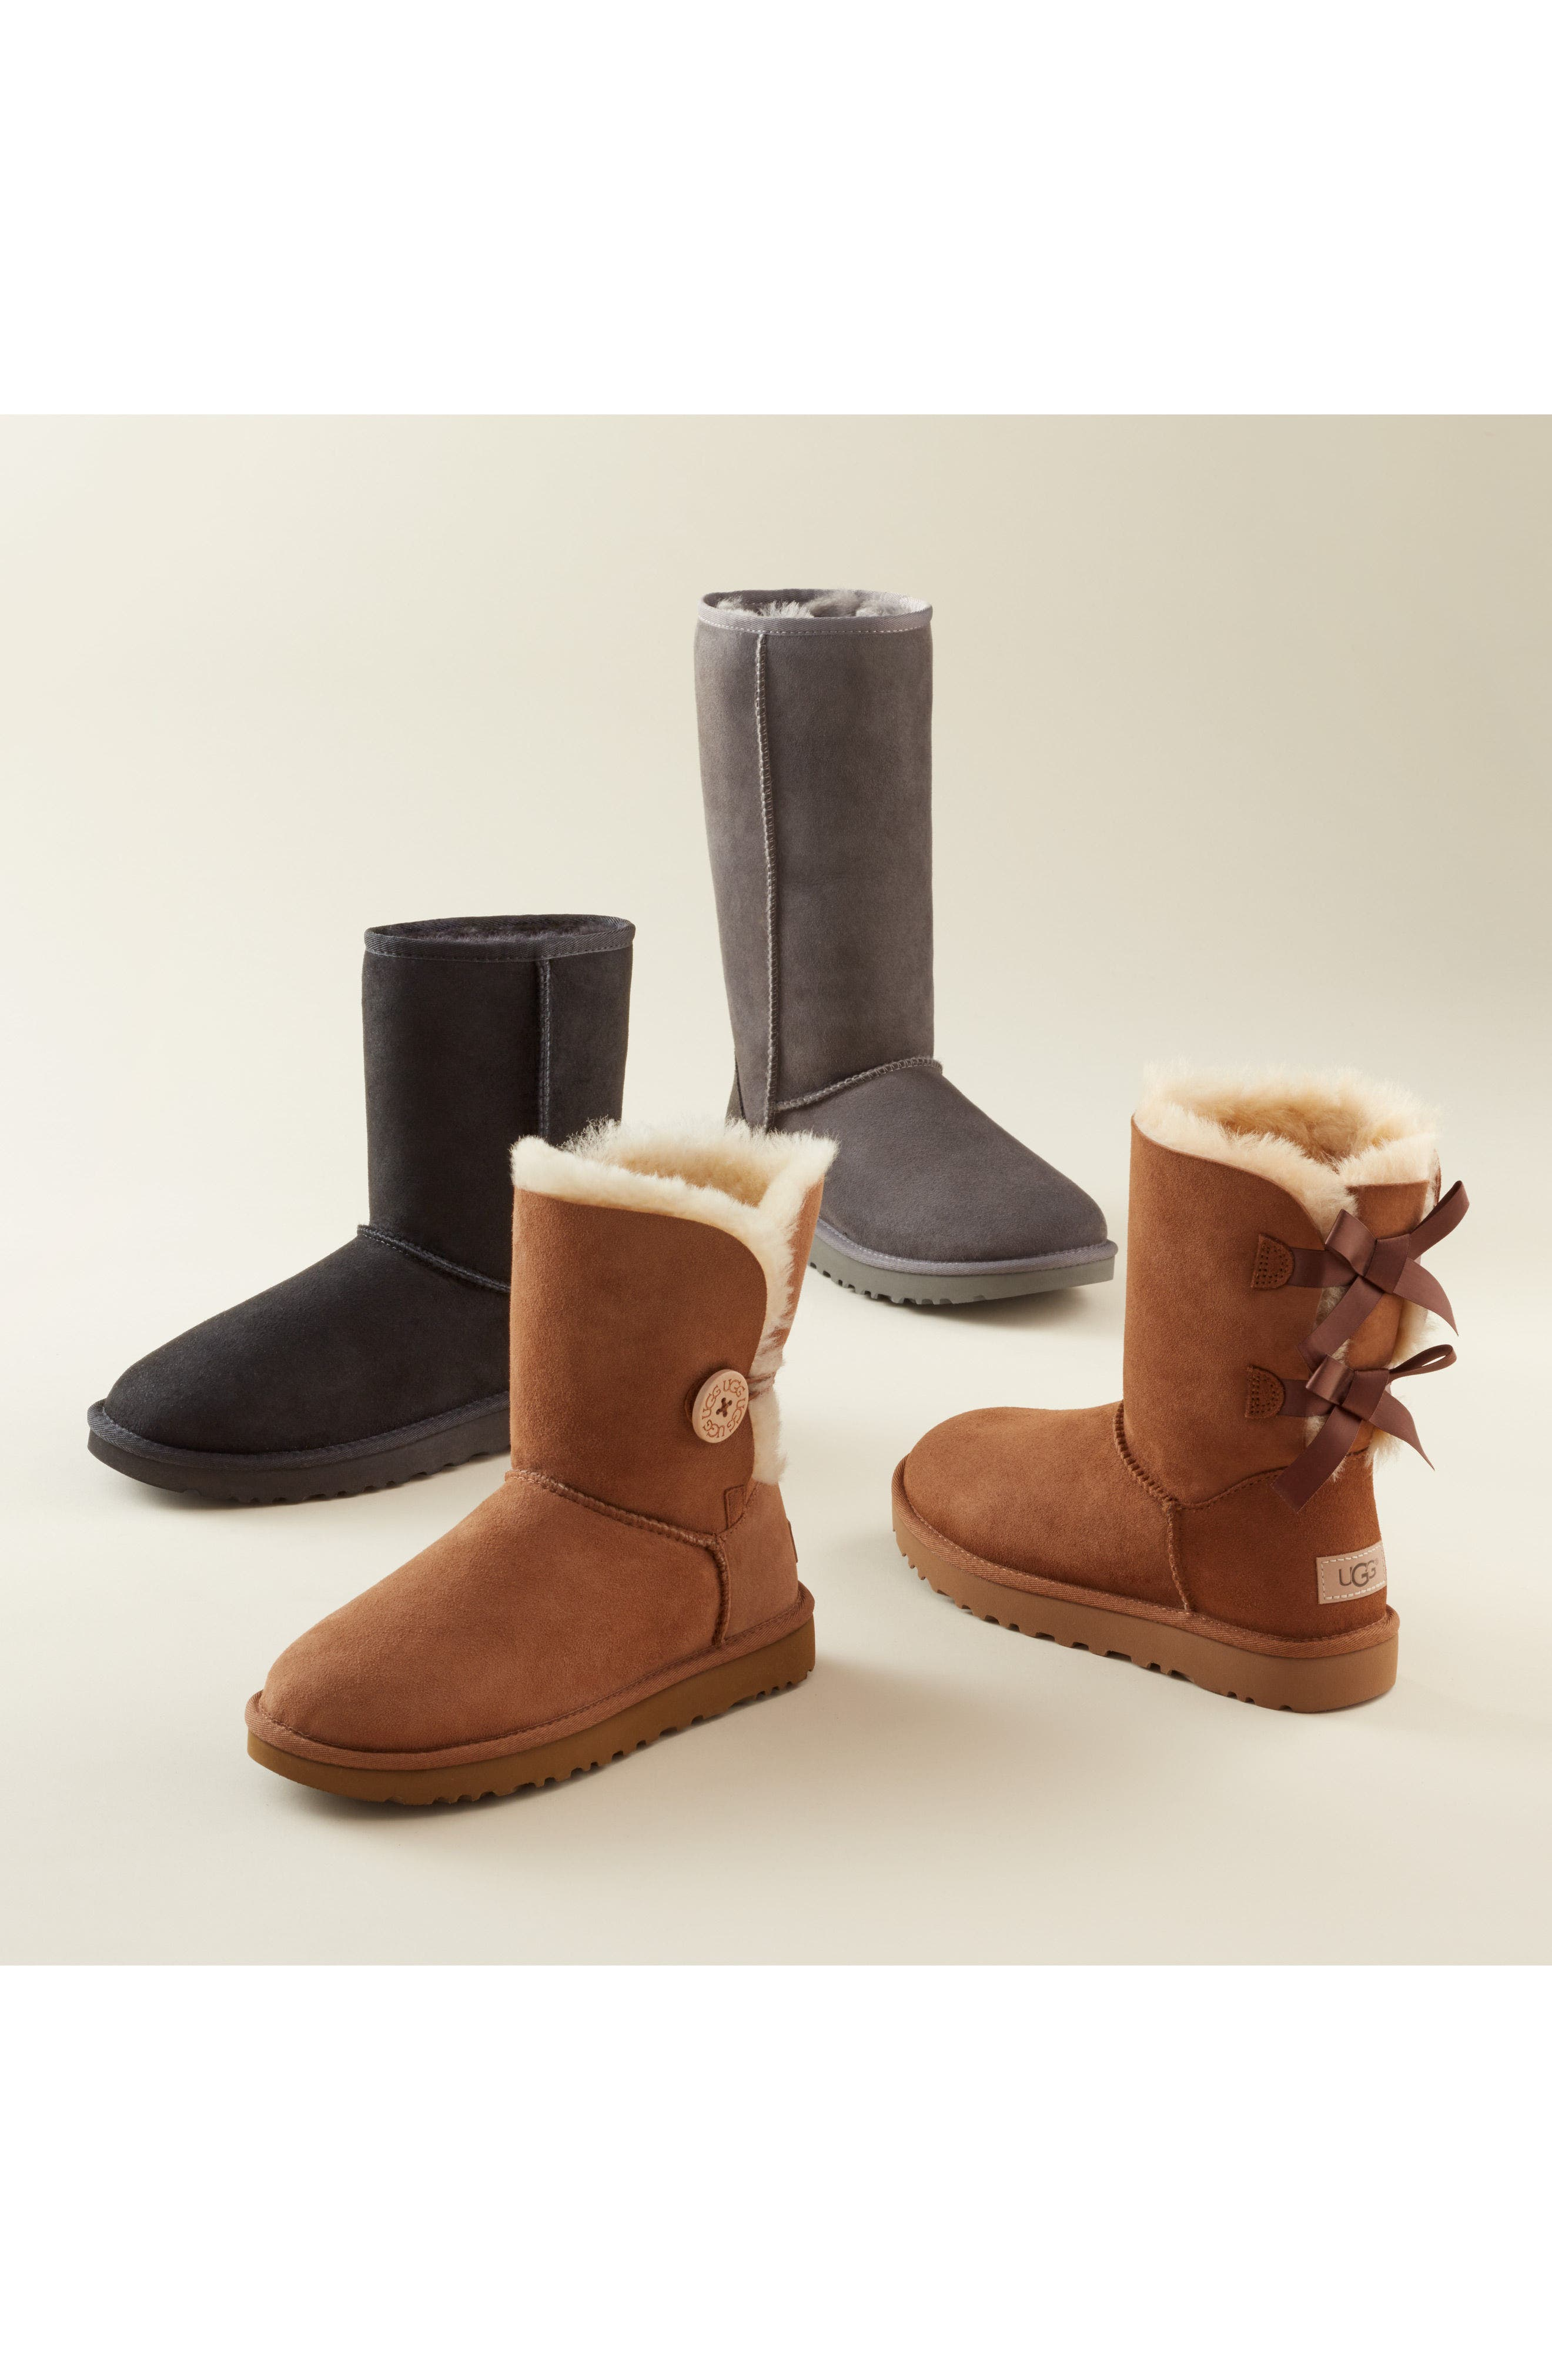 'Classic II' Genuine Shearling Lined Short Boot,                             Alternate thumbnail 12, color,                             BRINDLE SUEDE